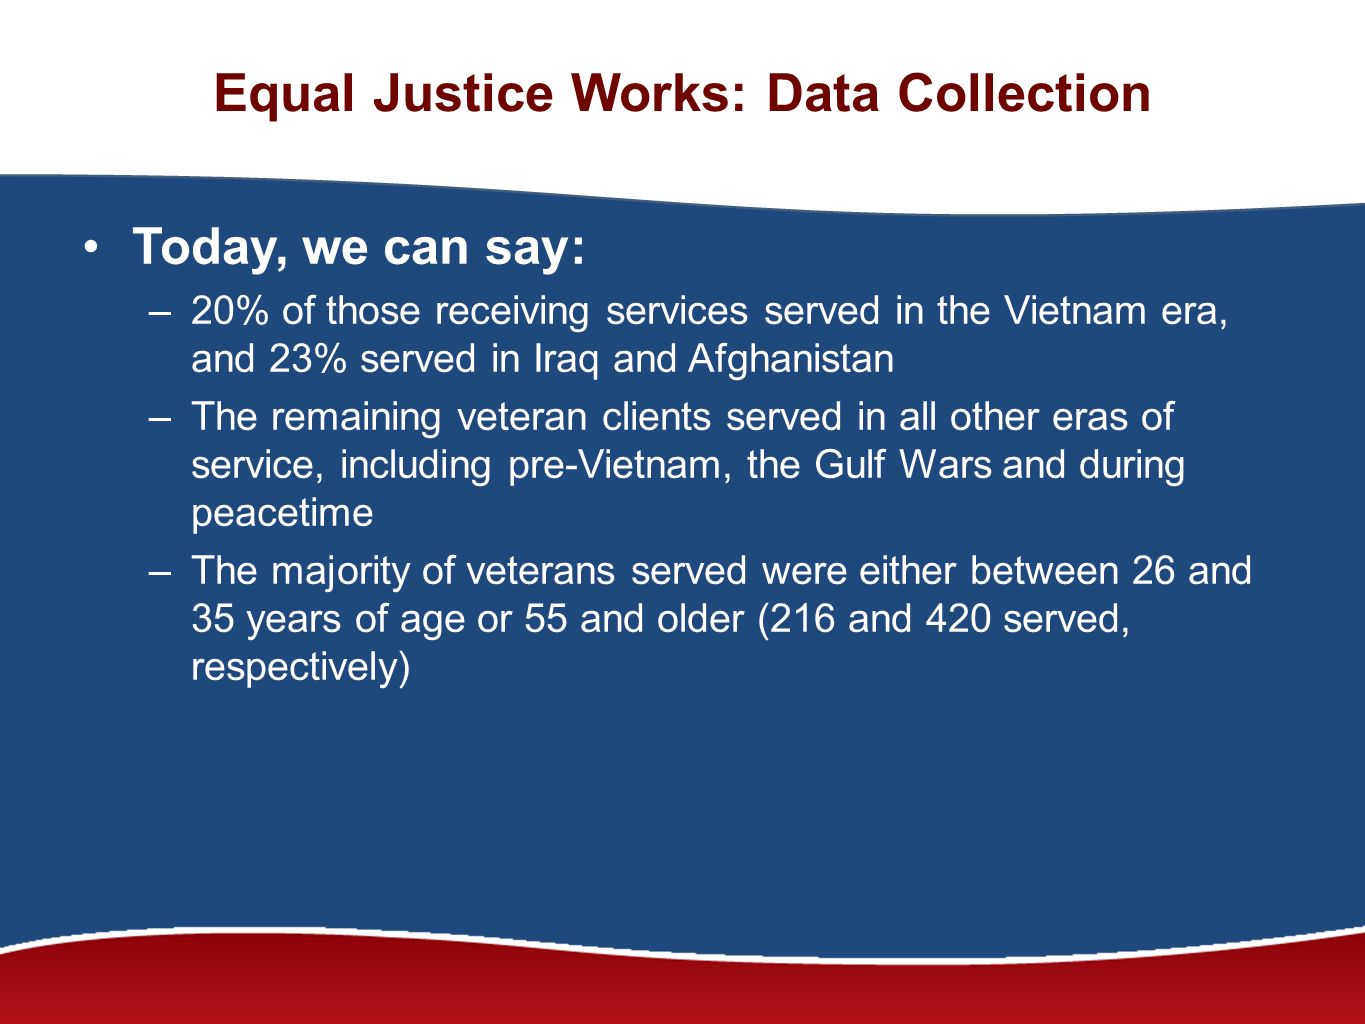 Equal Justice Works: Data Collection Today, we can say: –20% of those receiving services served in the Vietnam era, and 23% served in Iraq and Afghanistan –The remaining veteran clients served in all other eras of service, including pre-Vietnam, the Gulf Wars and during peacetime –The majority of veterans served were either between 26 and 35 years of age or 55 and older (216 and 420 served, respectively)